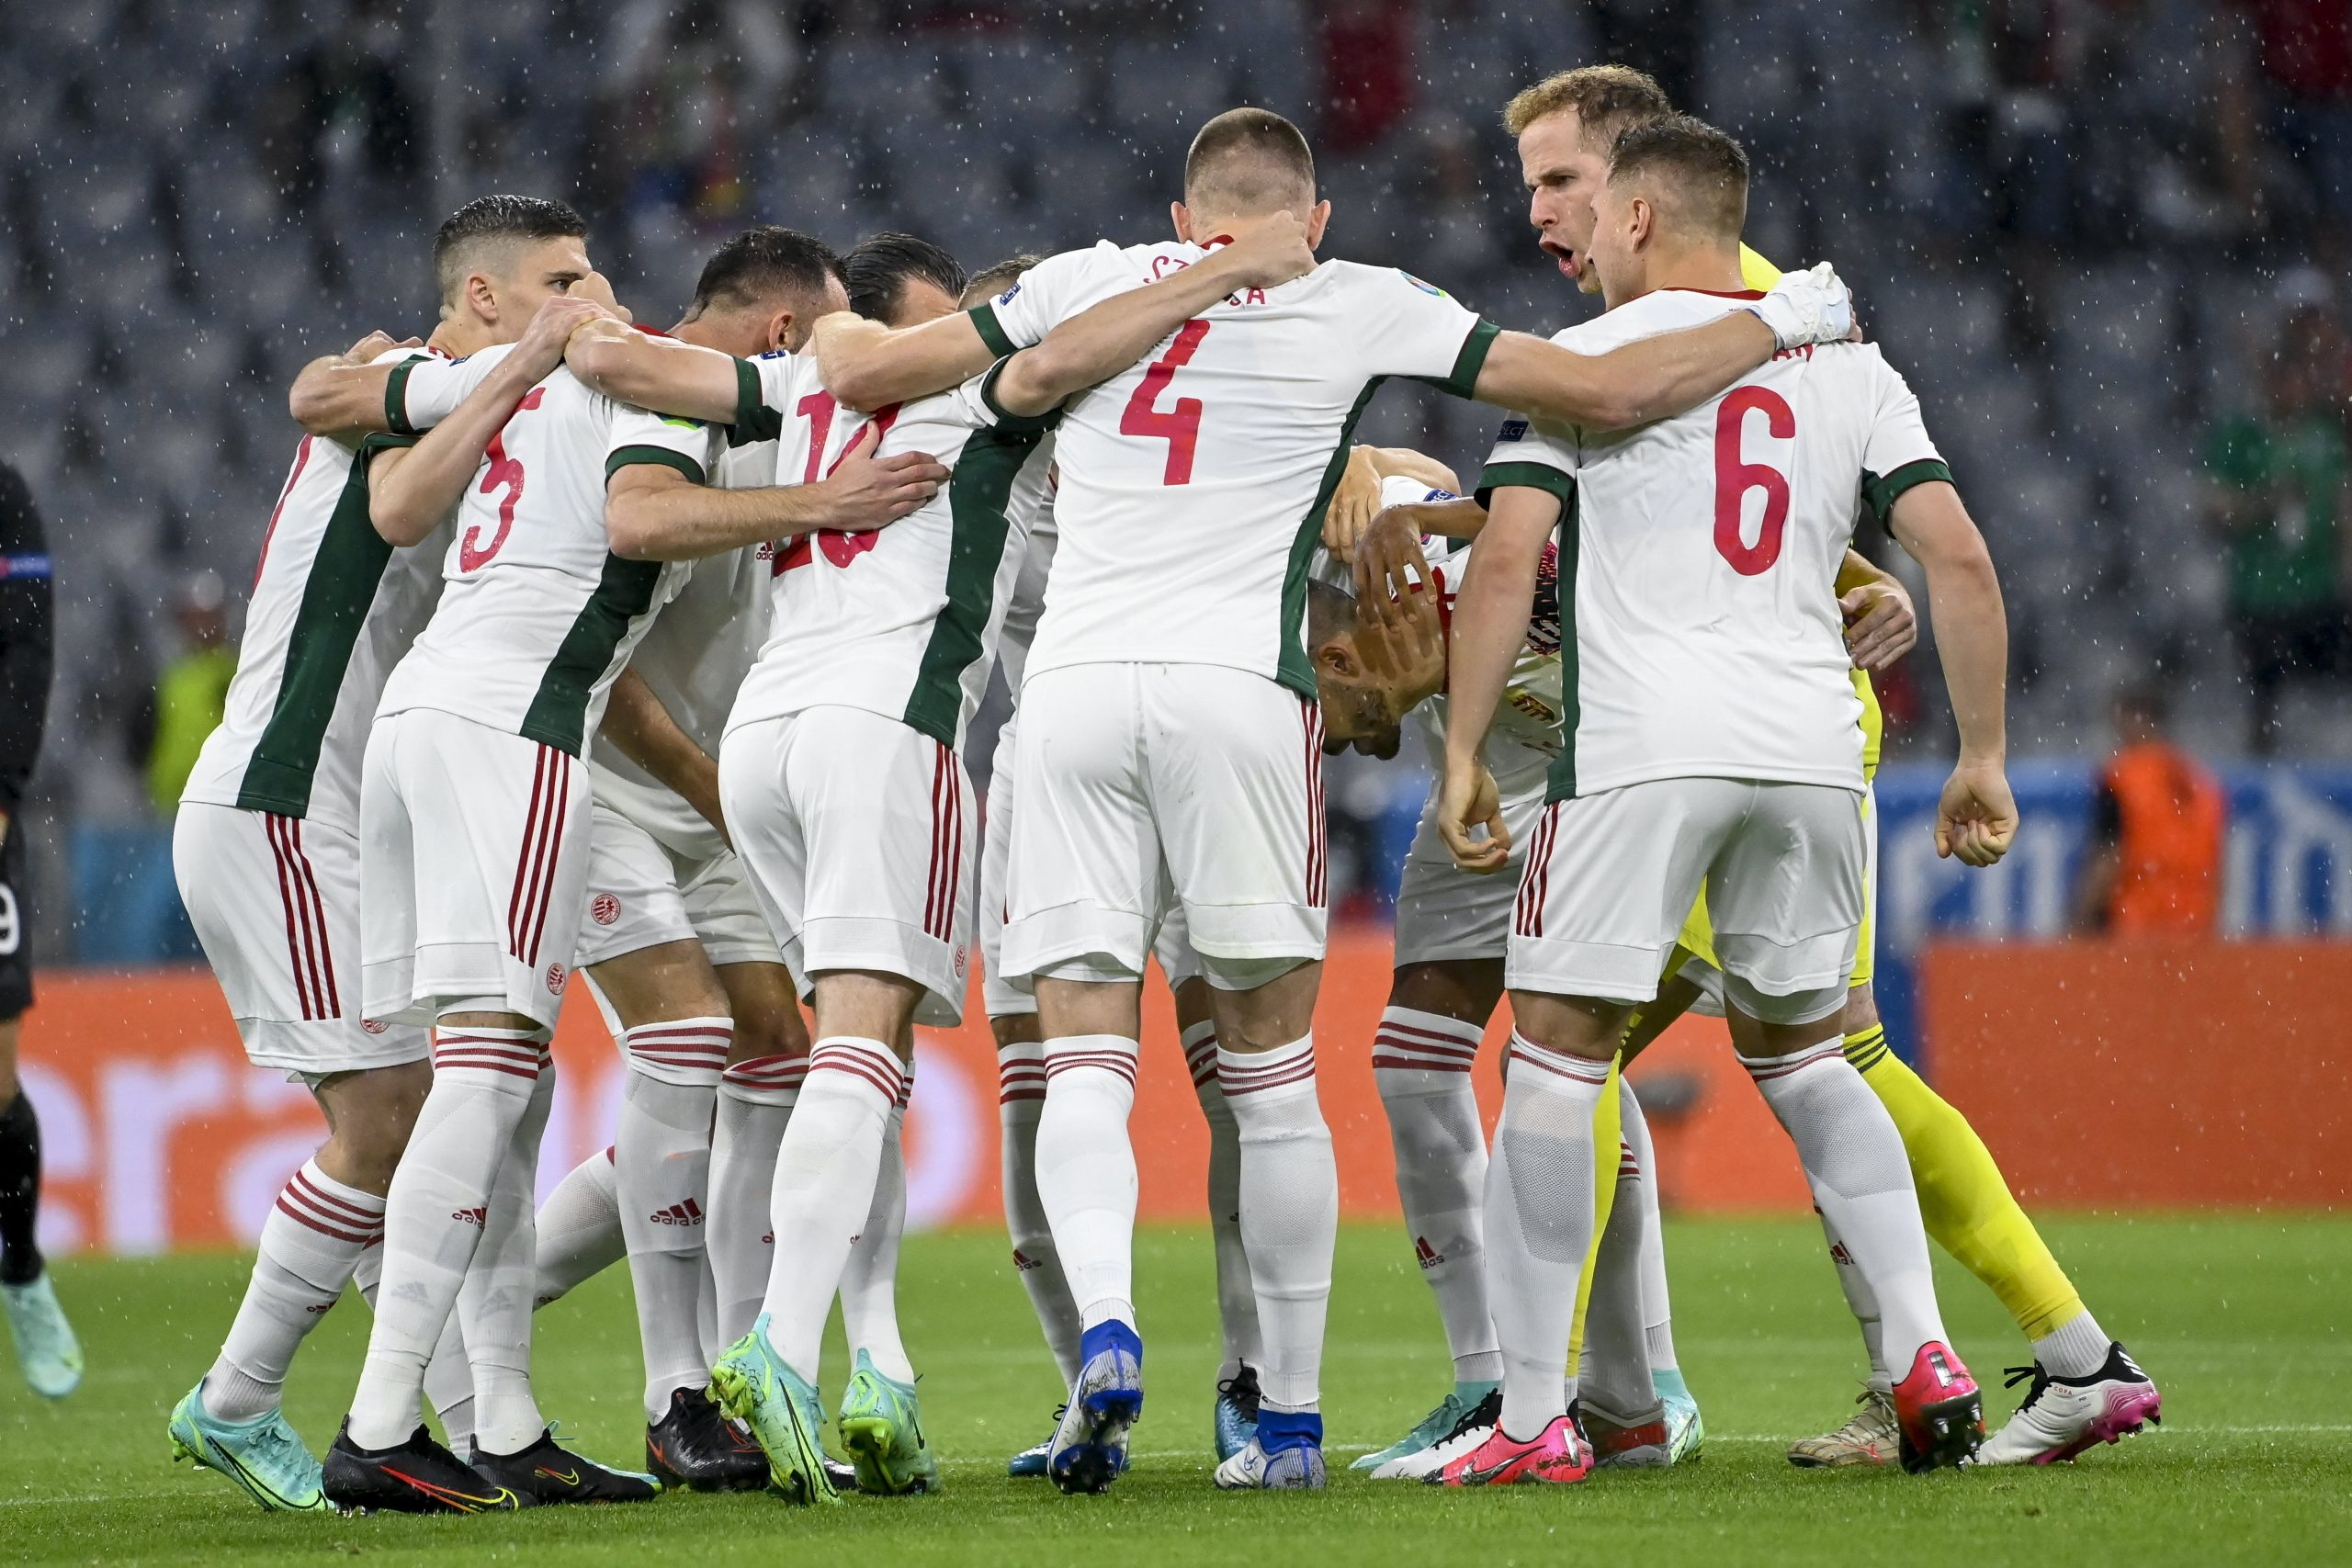 Football Magic in Germany Not Enough to Qualify but More Than Enough to Earn Respect